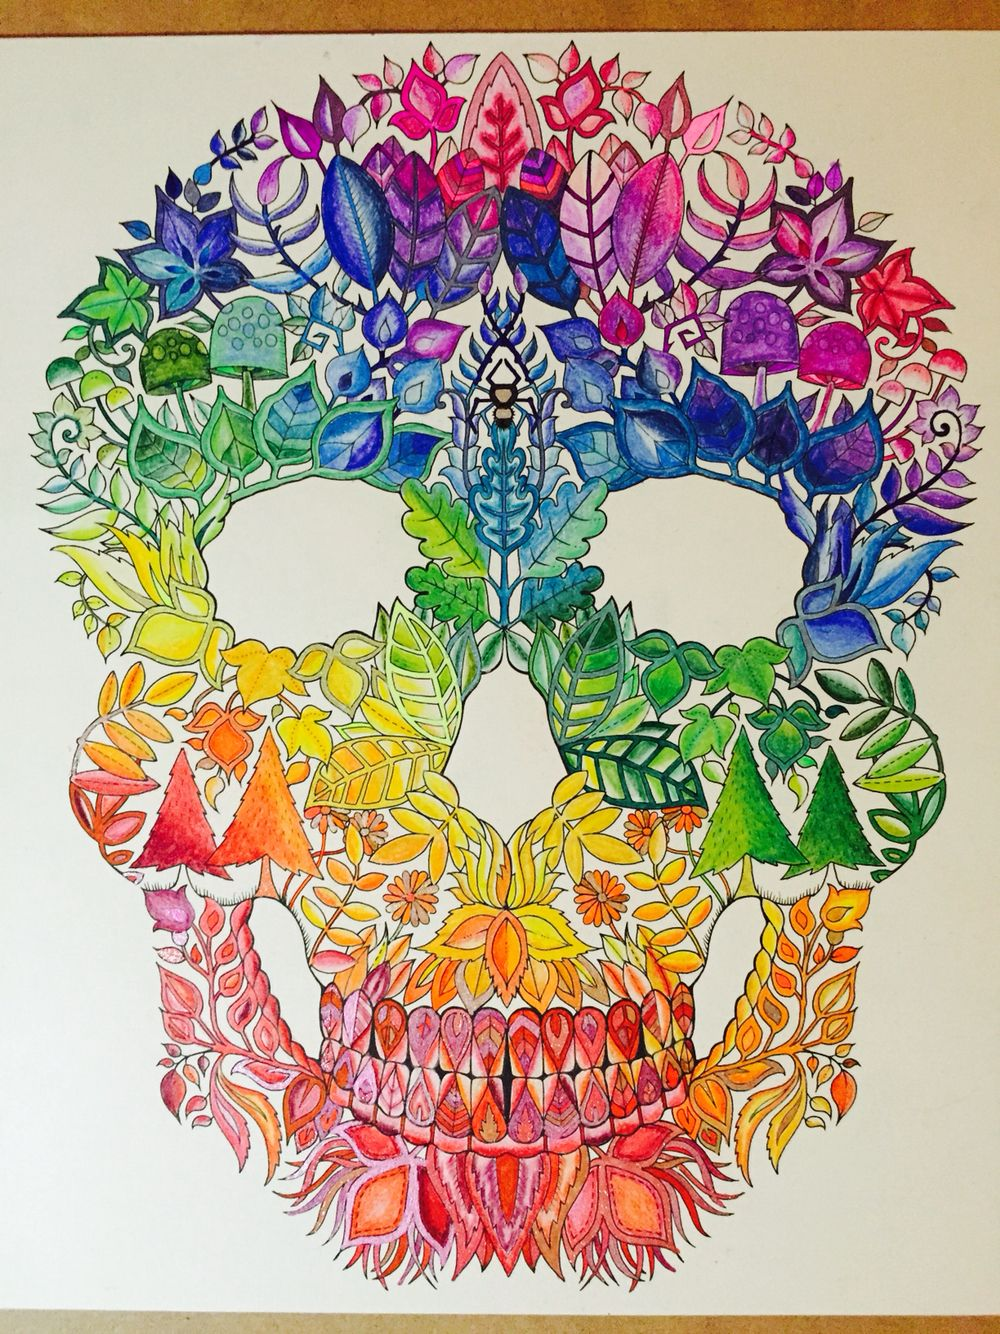 The enchanted forest coloring book review - Skull From Johana Basford S Enchanted Forest Using Pencils